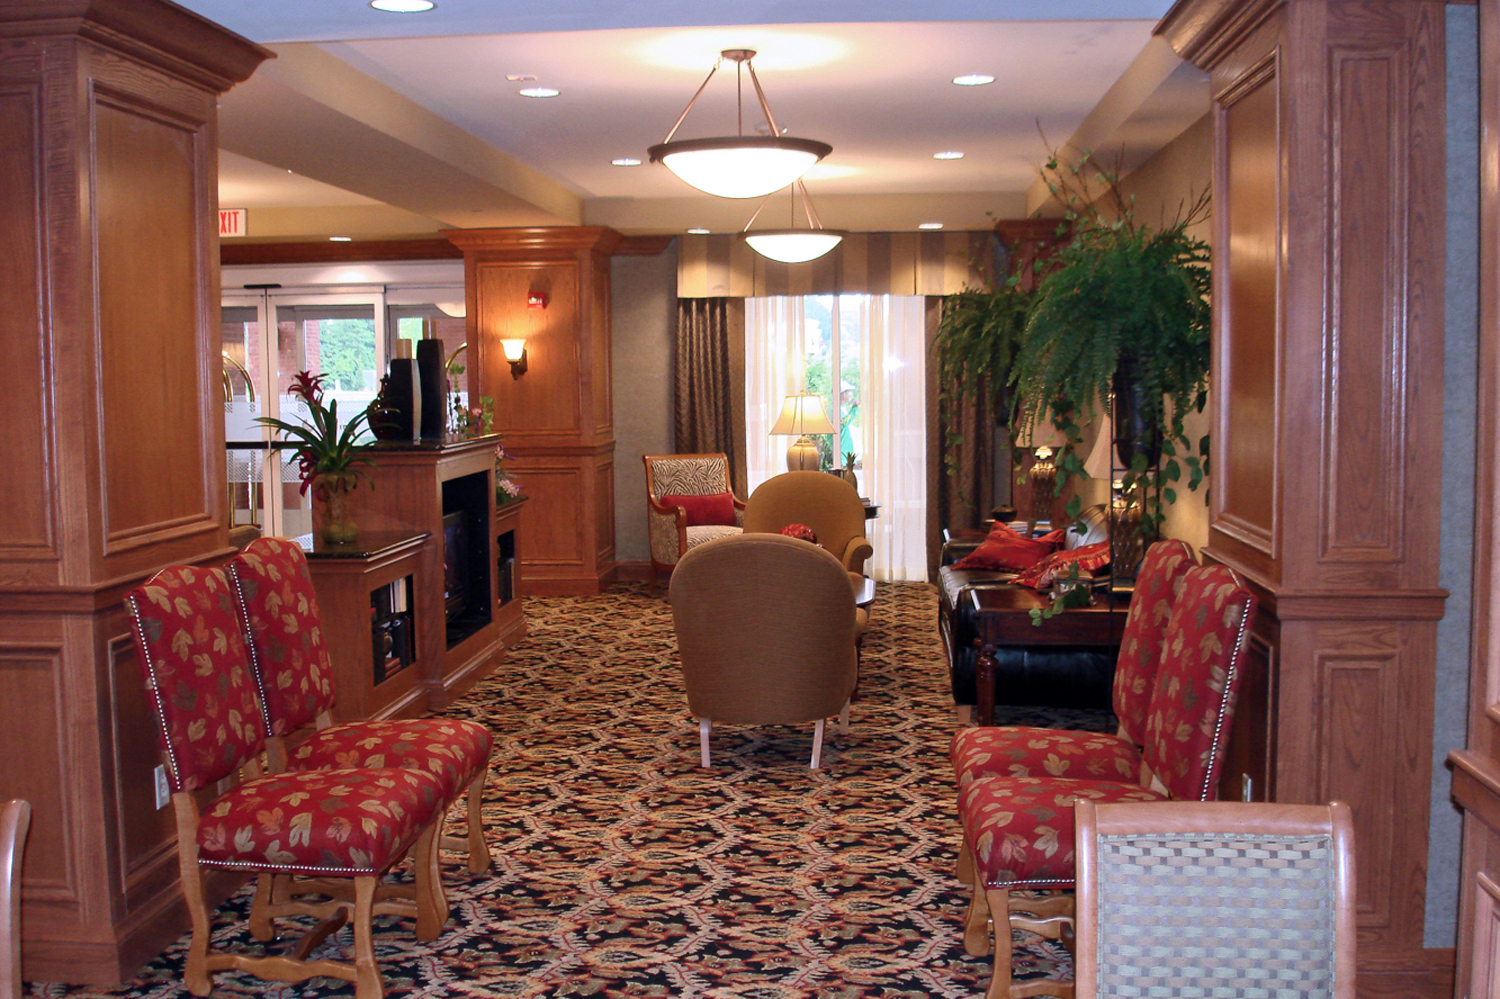 Hampton-Inn-in-Memphis,-Tn---Hospitality-Hotel-Design-Construction-4.jpg